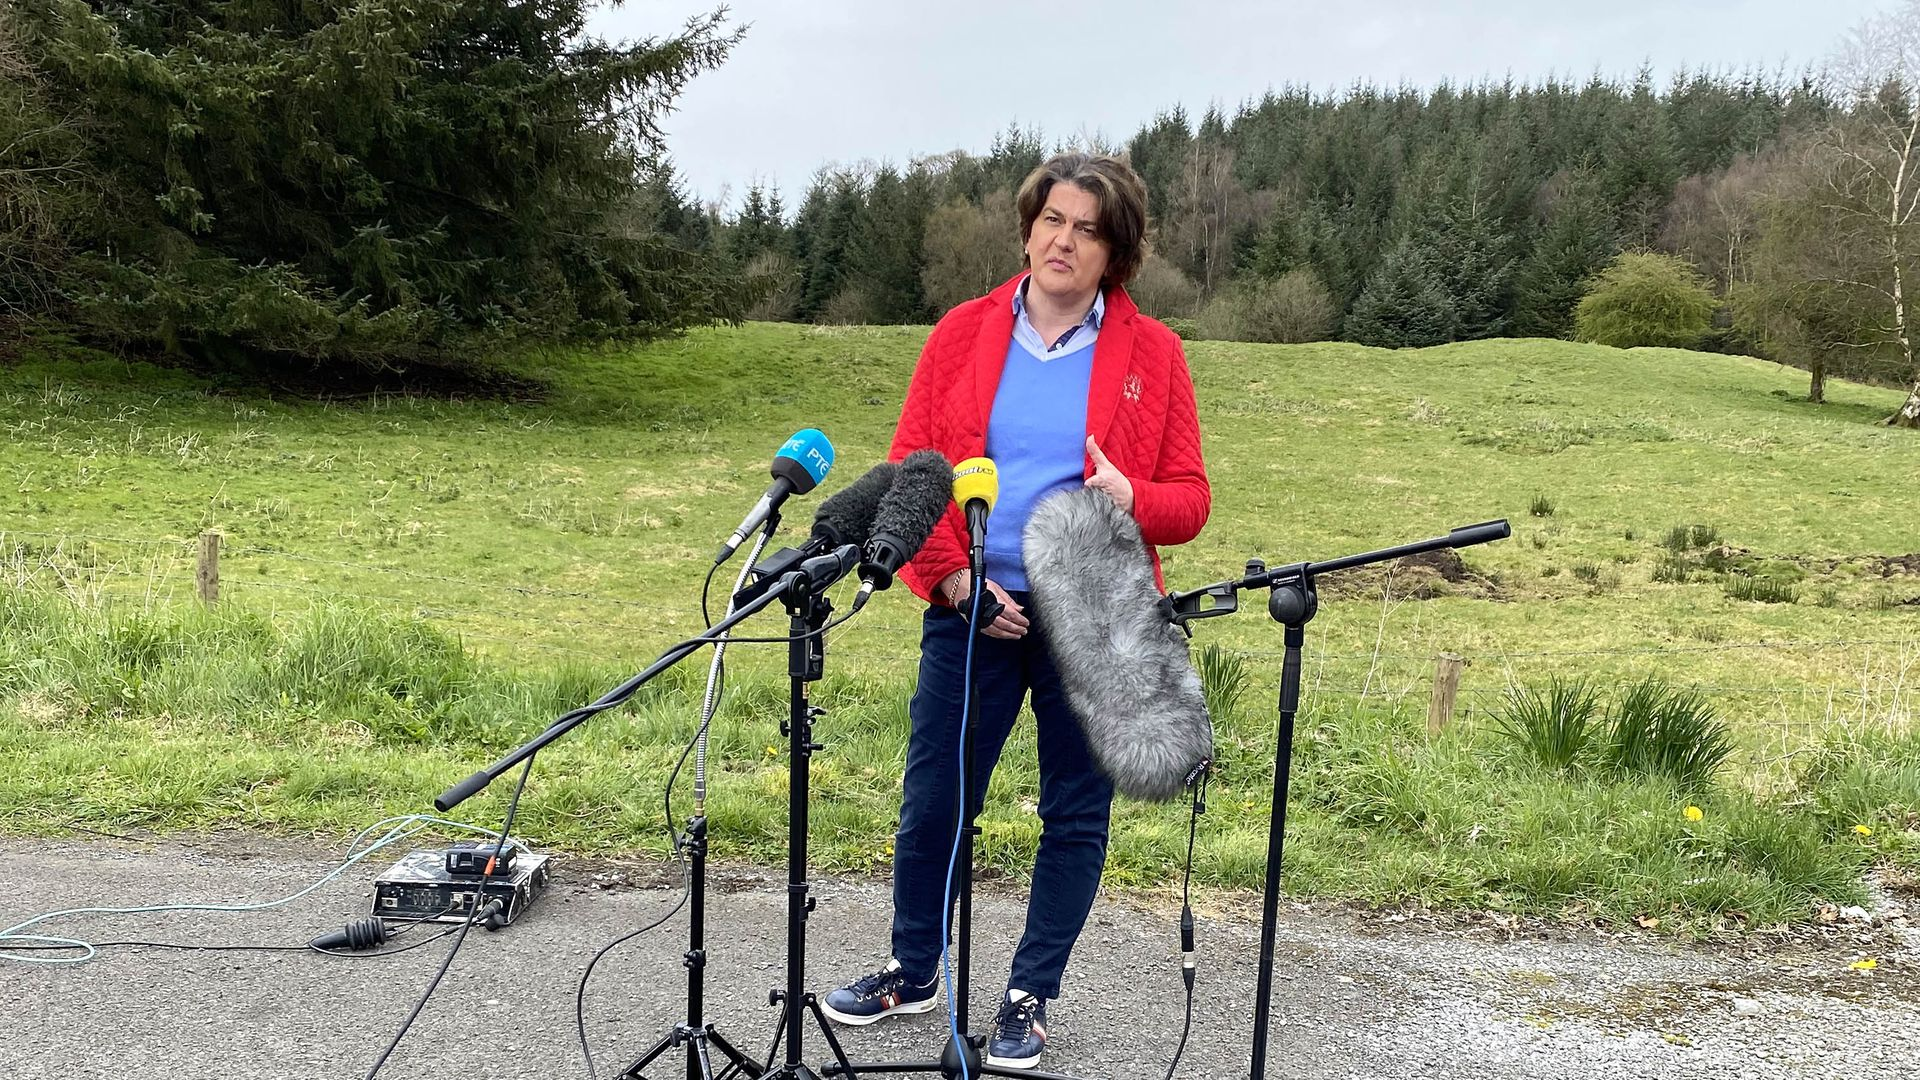 Northern Ireland First Minister Arlene Foster speaking in Co Fermanagh in Northern Ireland blamed 'malign' criminal elements for whipping up young people involved in recent violence across parts of Northern Ireland - Credit: PA